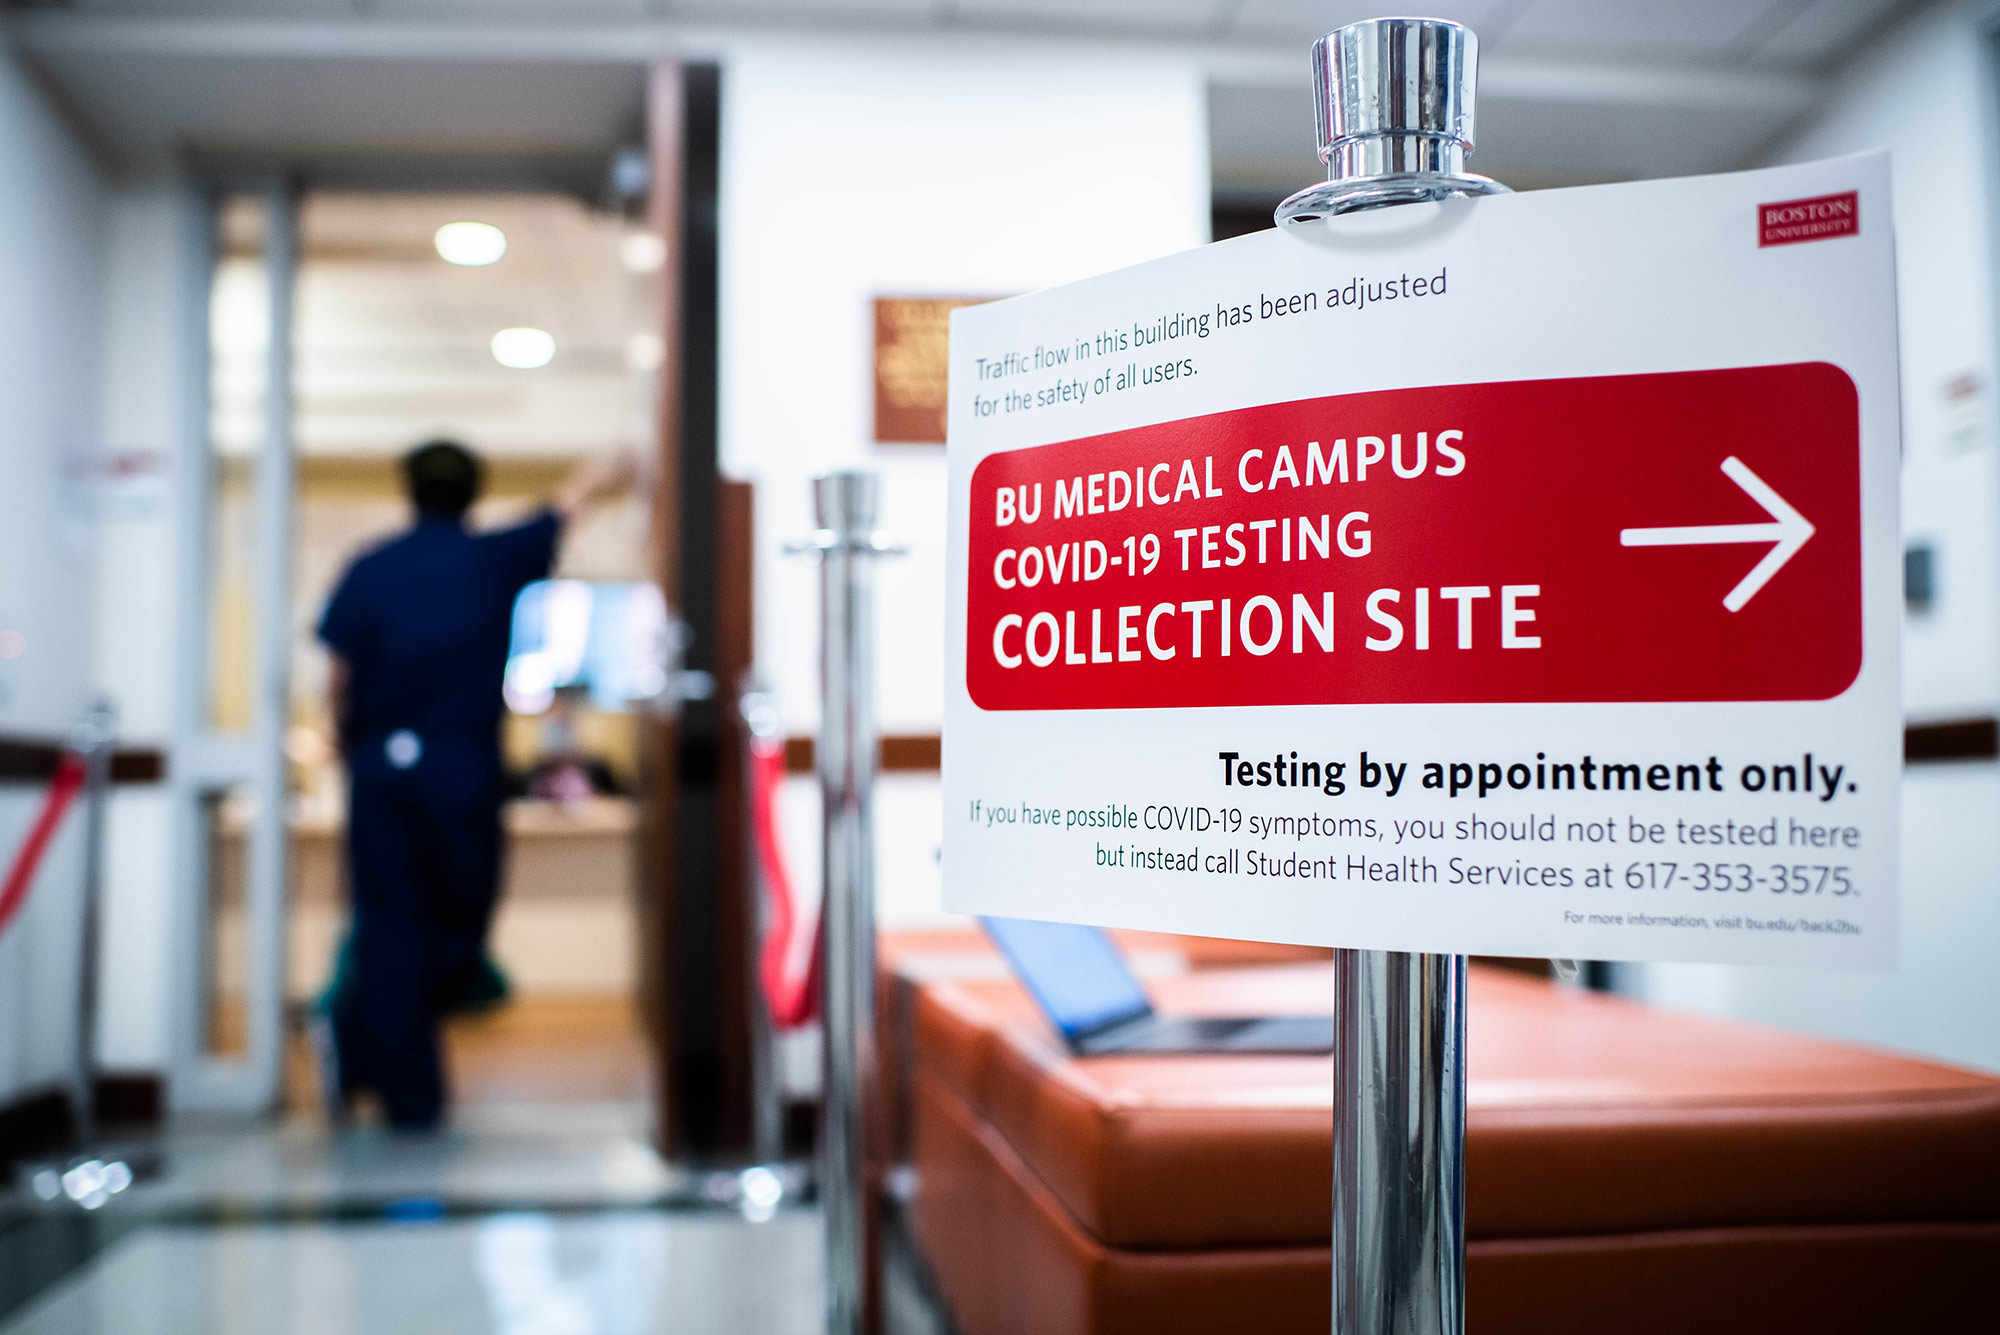 "Sign at the the Covid-19 testing collection site on the BU Medical Campus on July 27, 2020. Sign reads ""BU Medical Campus COVID-19 Testing Collection Site"" in a red box with an arrow pointing to the right. Bolded text below reads ""Testing by appointment only."""